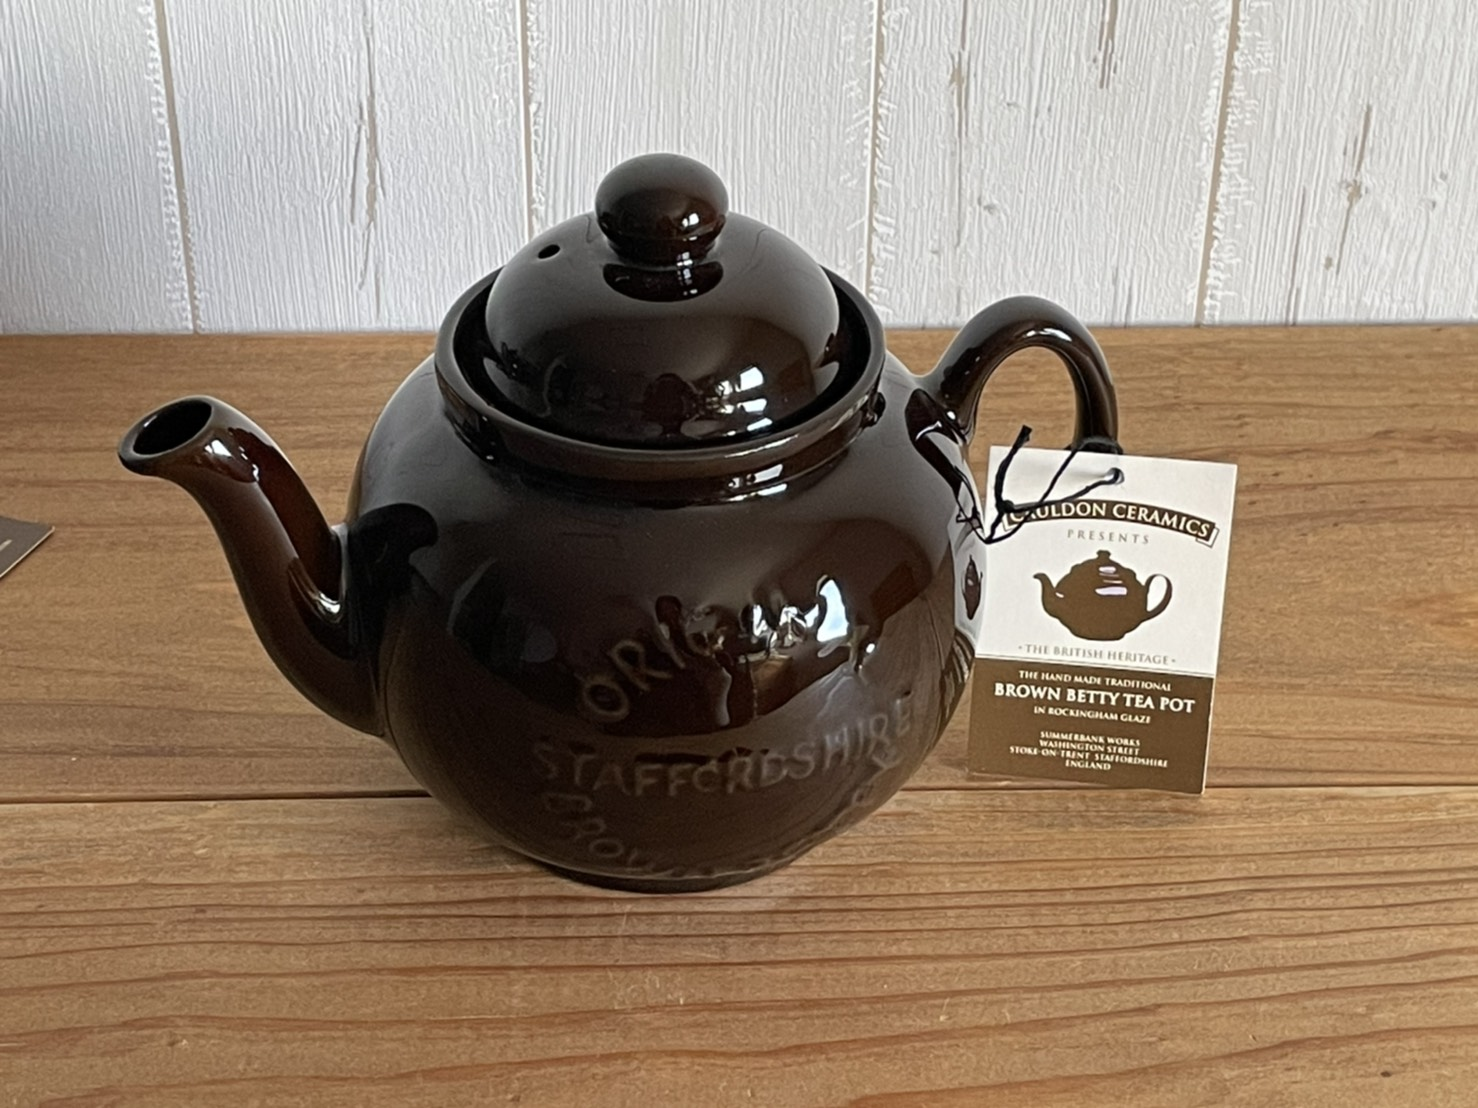 BROWN BETTY TEA POT